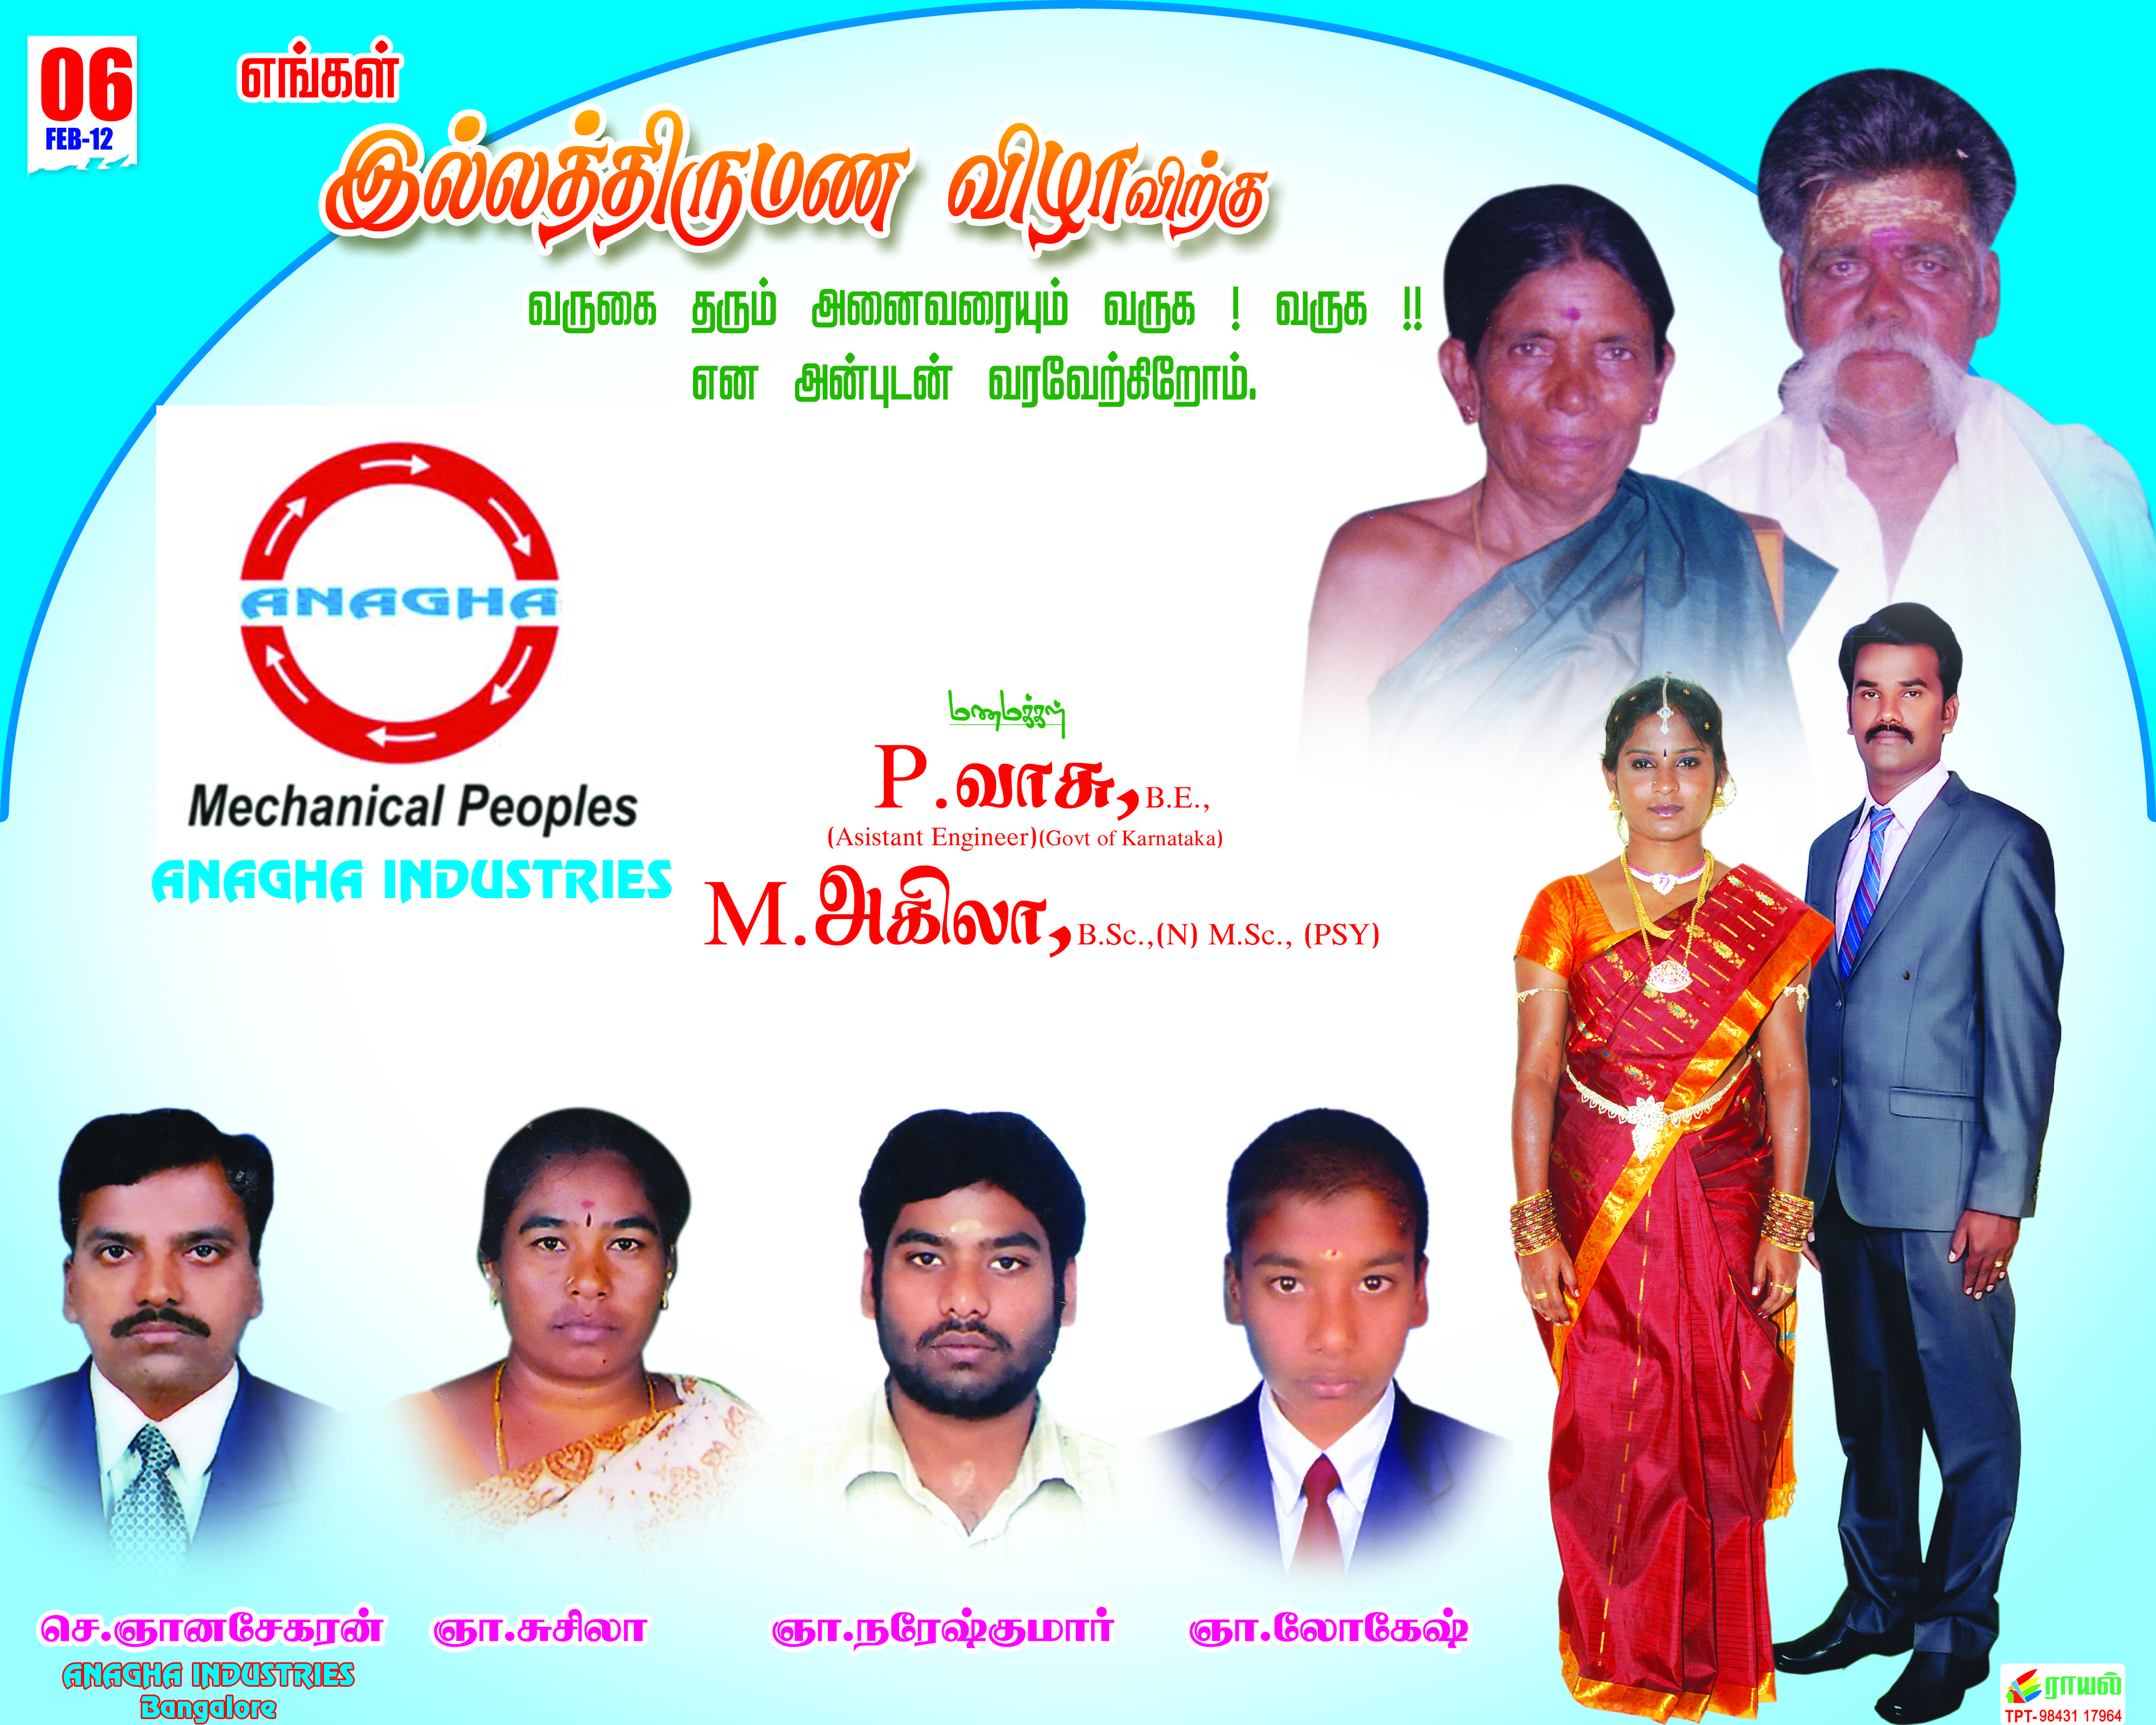 we had posted a banner on my bro s wedding day tamil wedding banner design wedding banner happy birthday images wedding banner